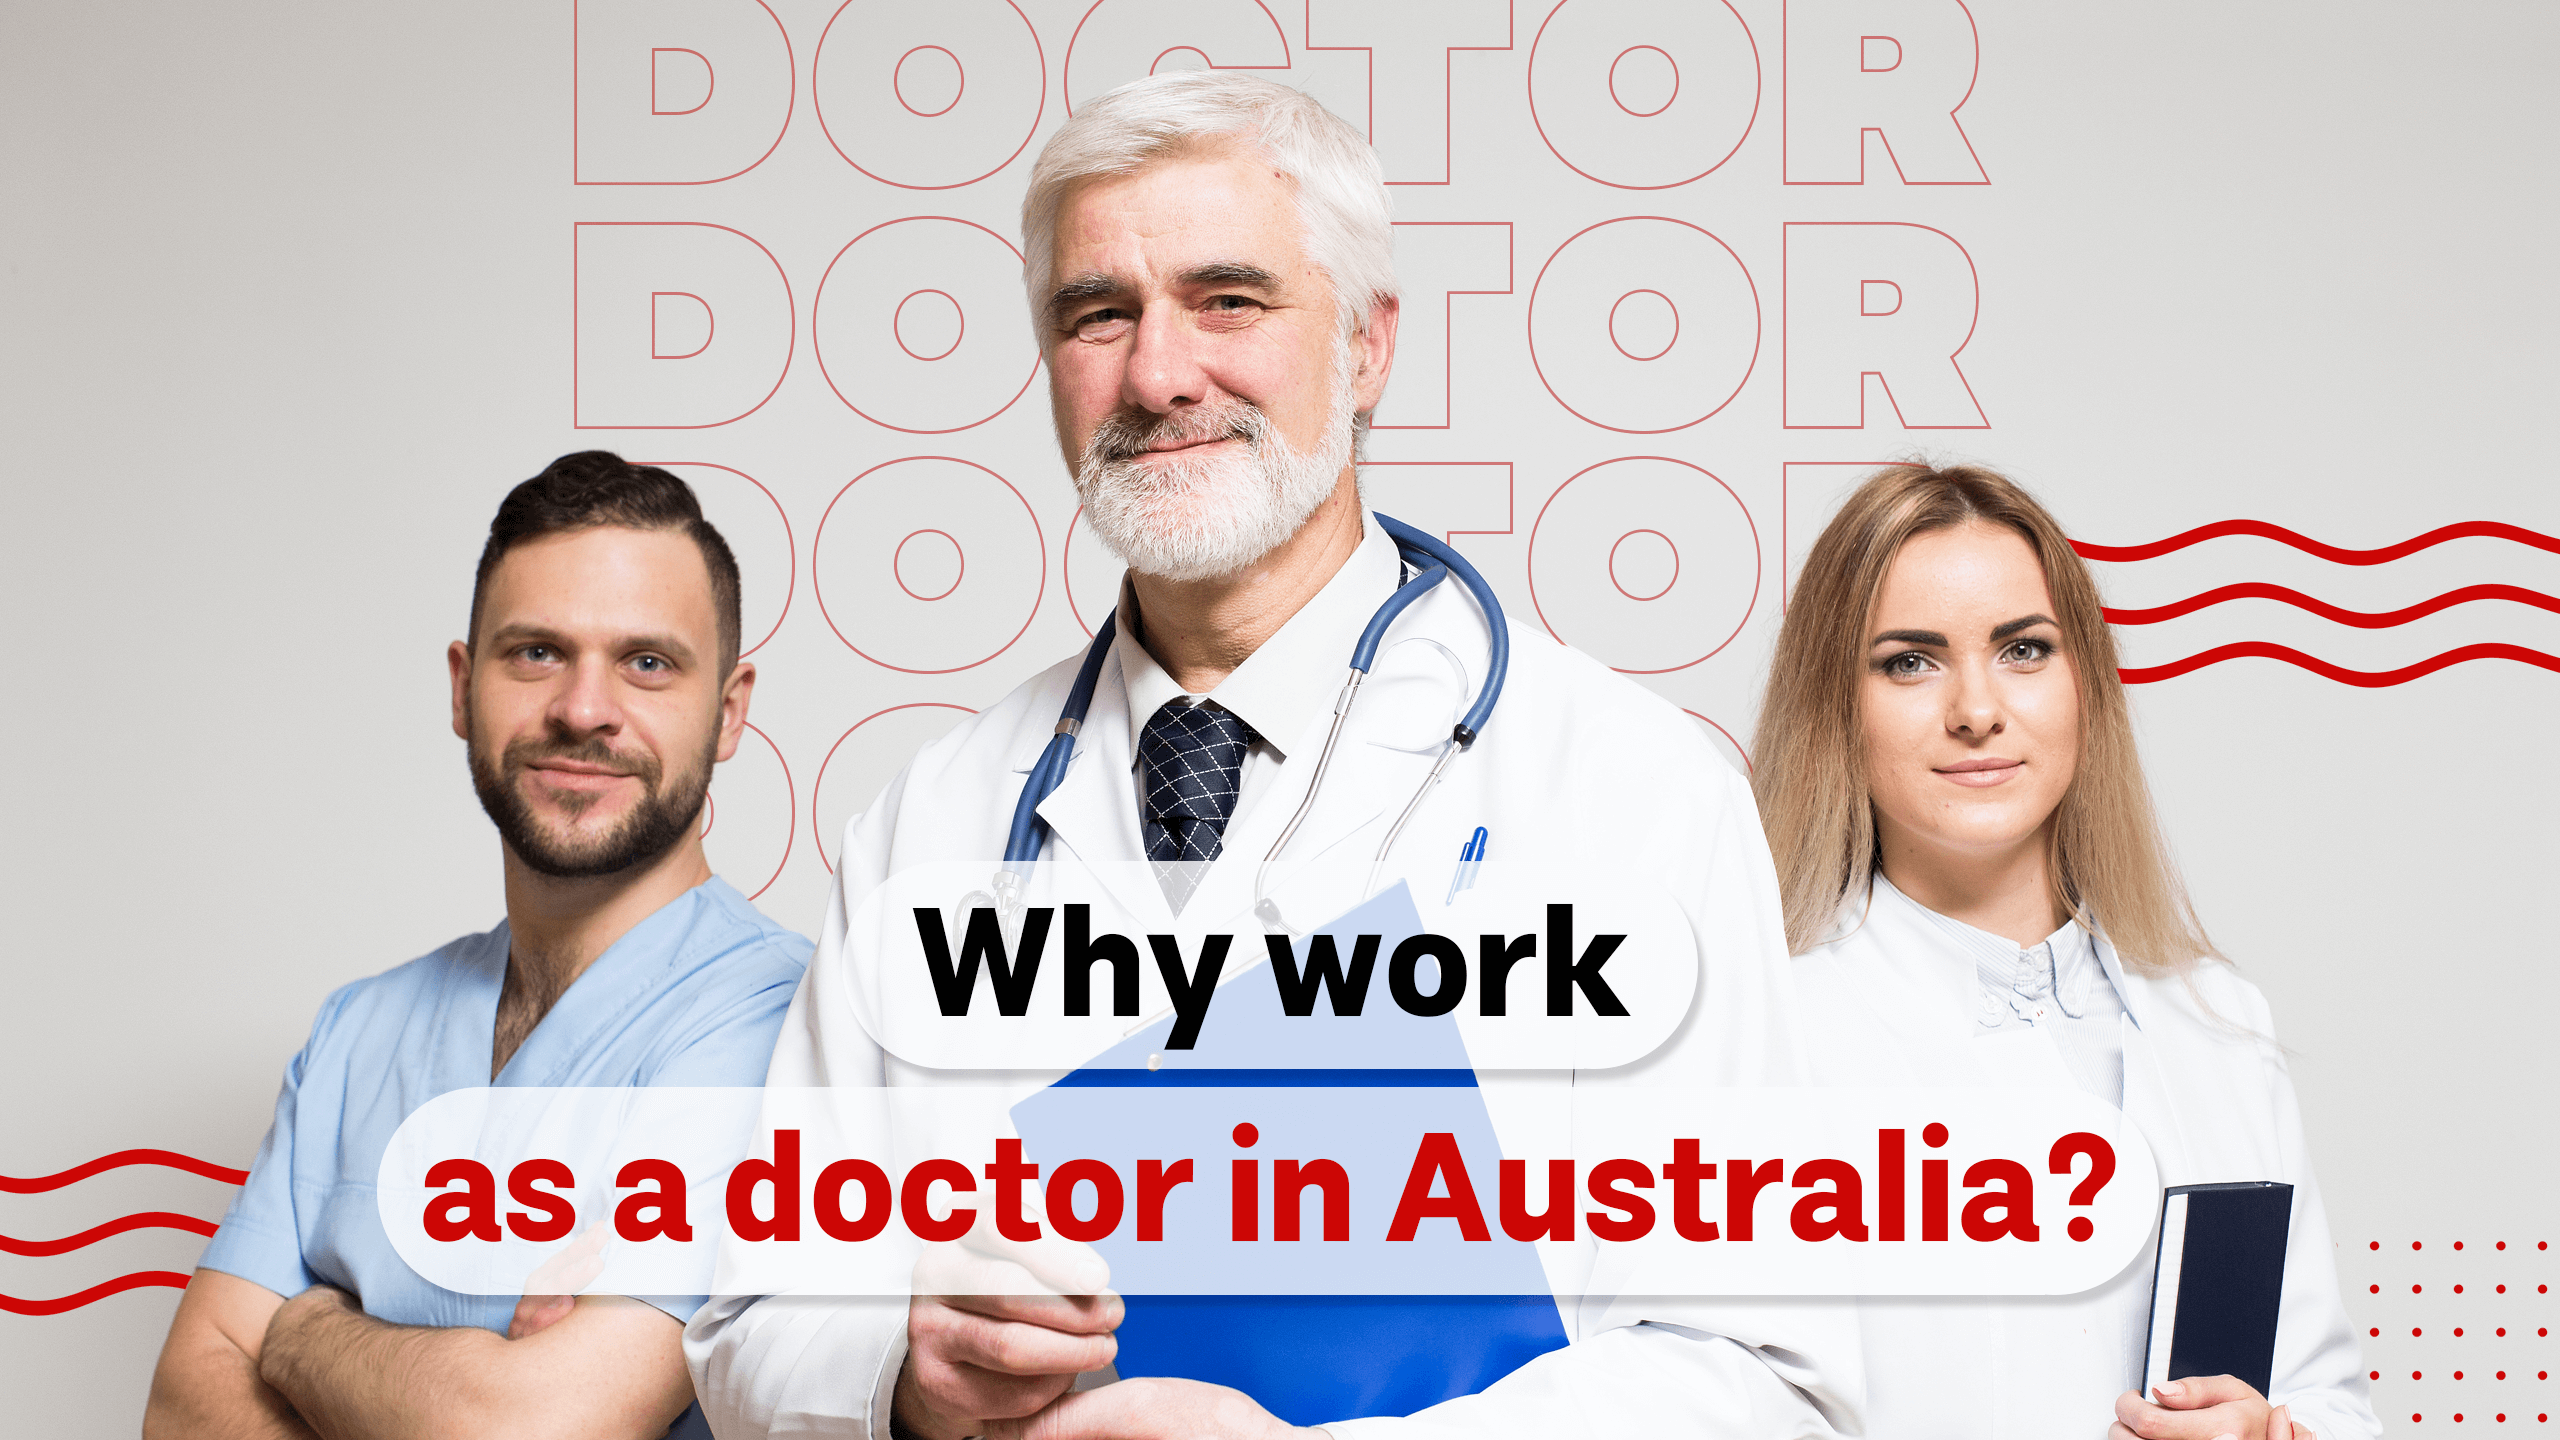 Why work as a doctor in Australia?